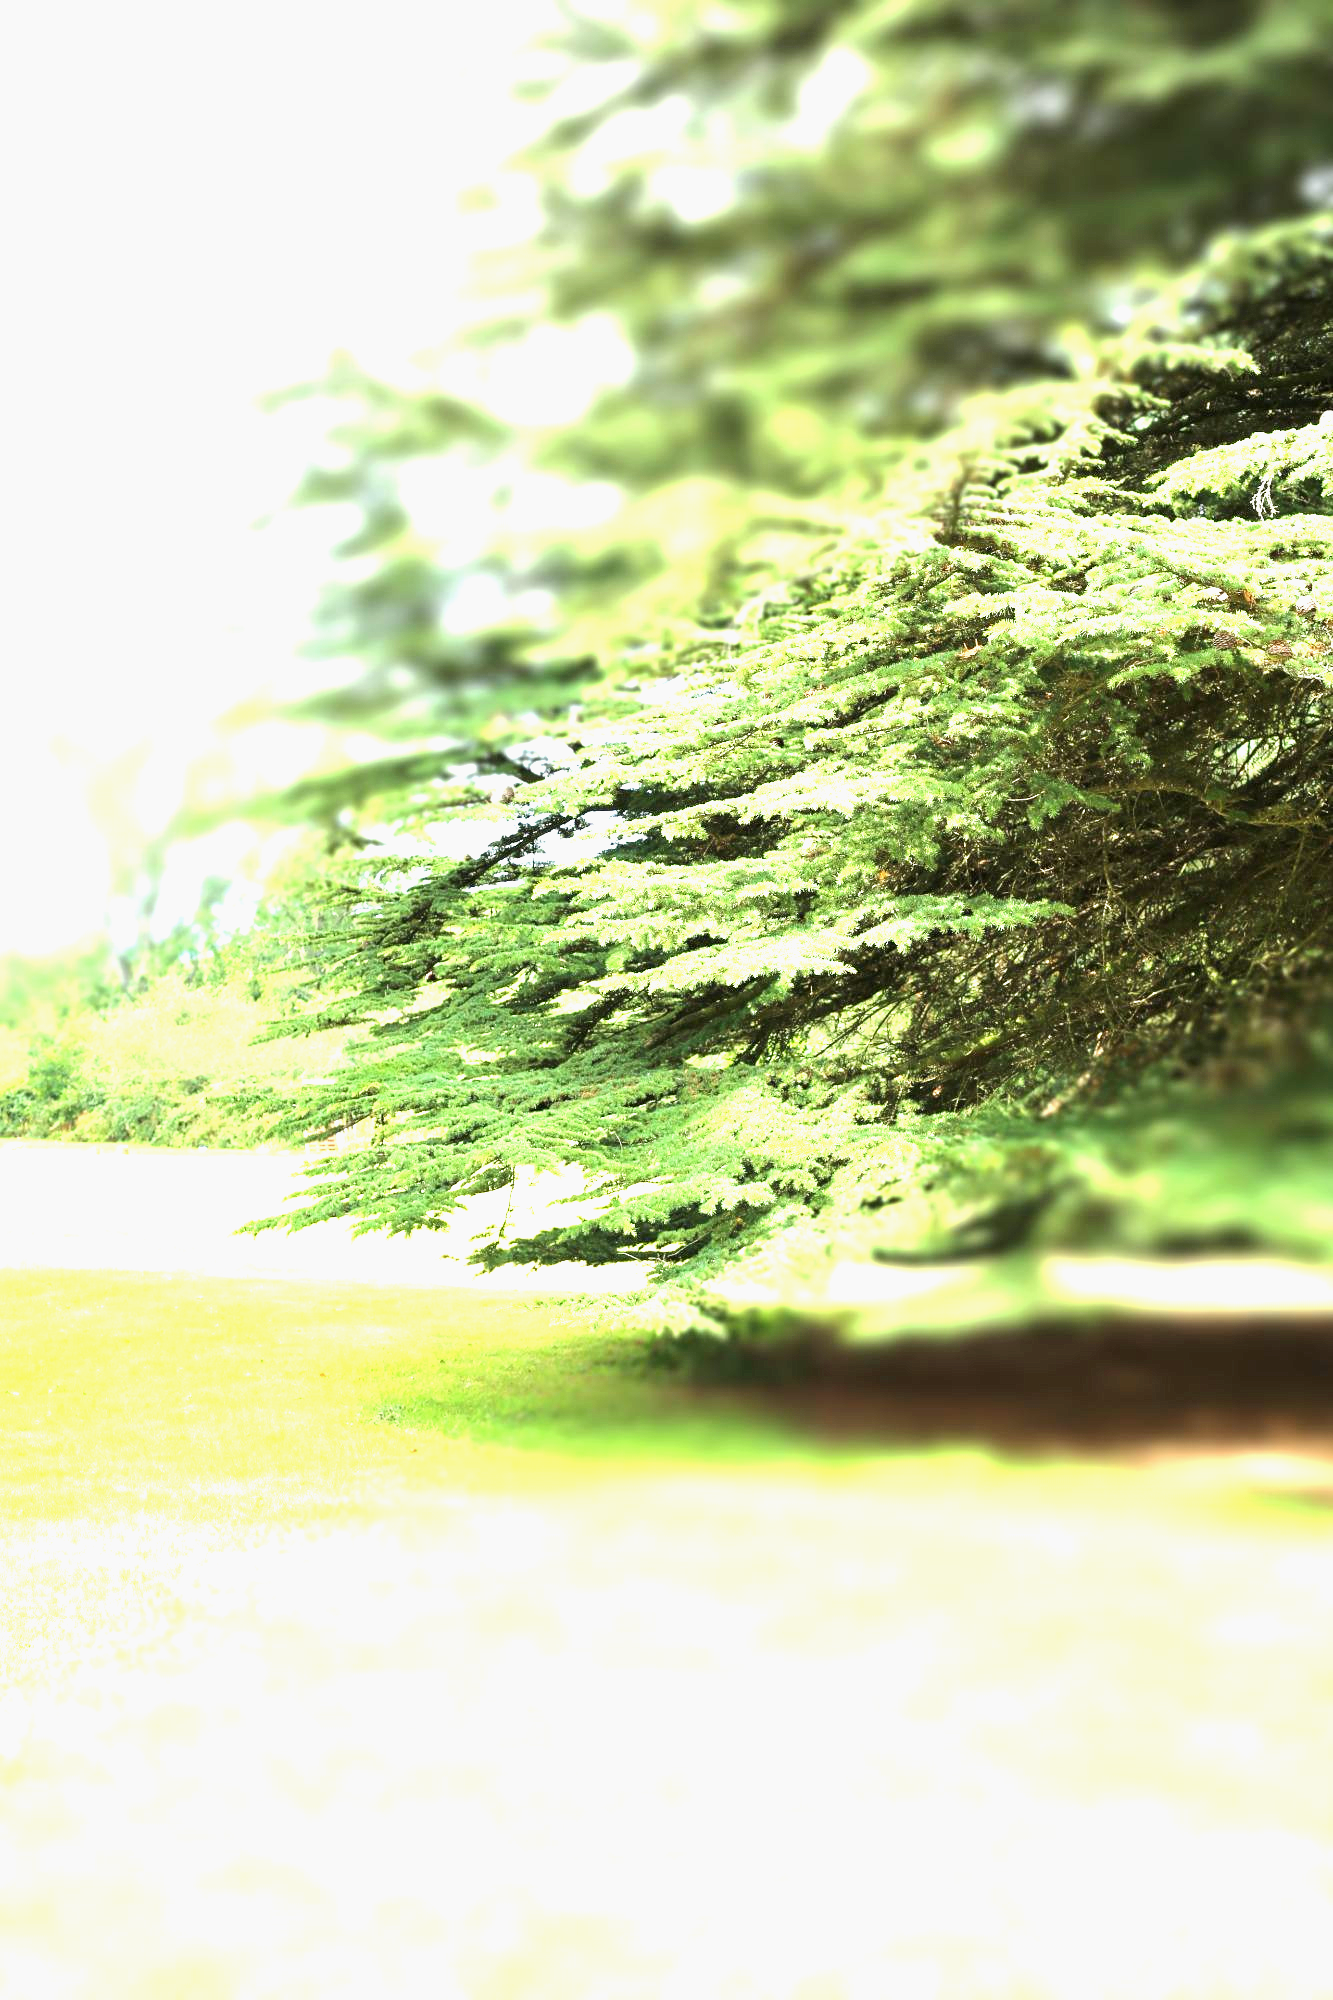 Dr Richard Watts